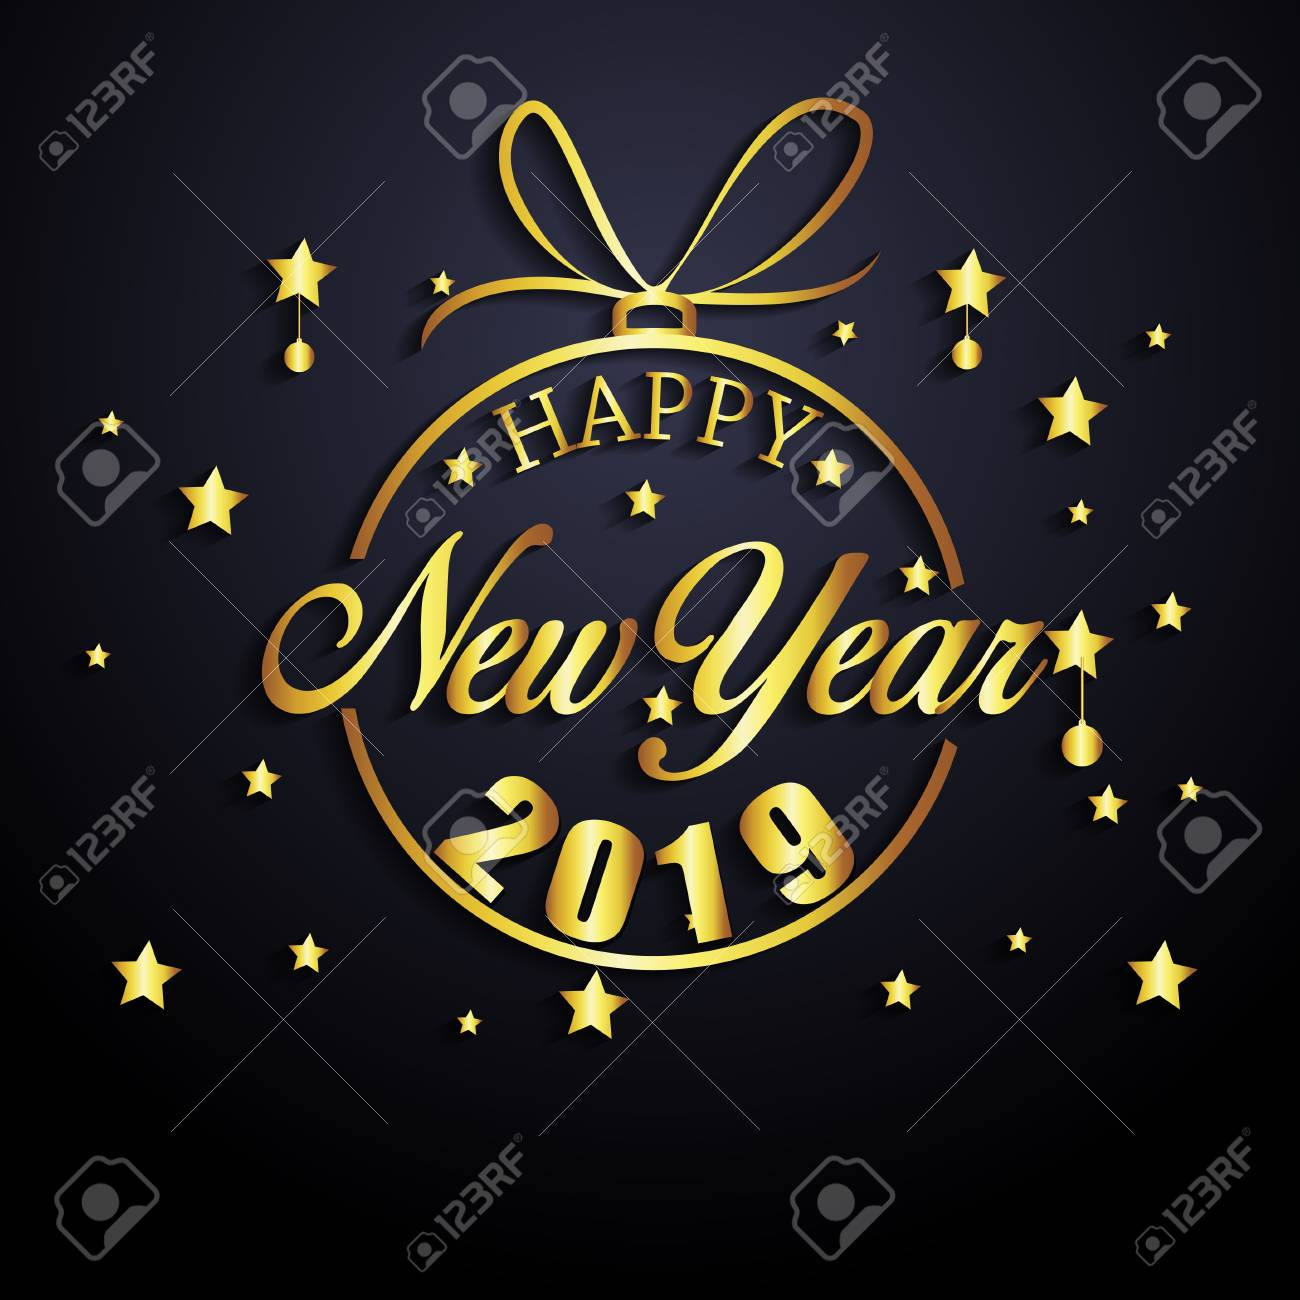 2019 Happy New Year Greeting Card Vector Design Template